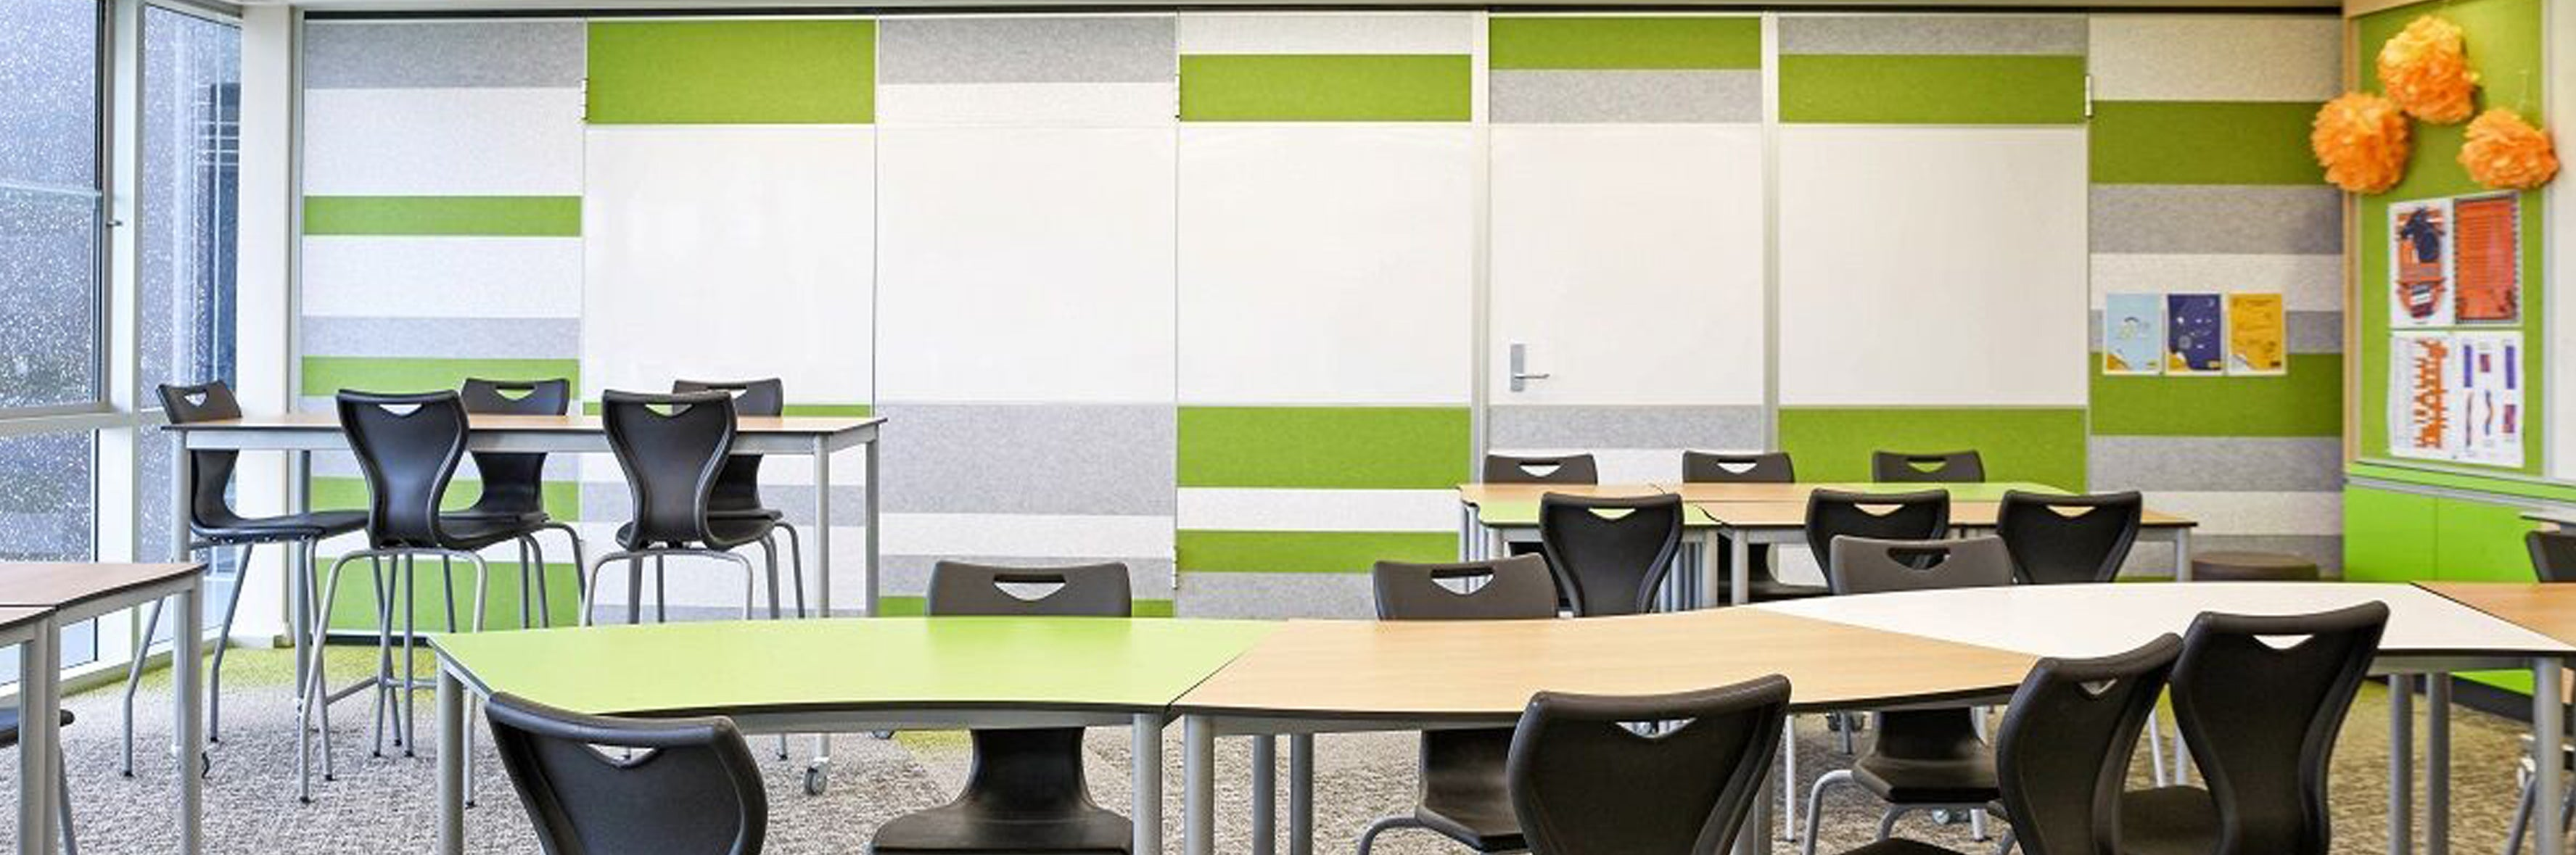 Sleek, Modern Whiteboards And Pinboards For Offices And Classrooms